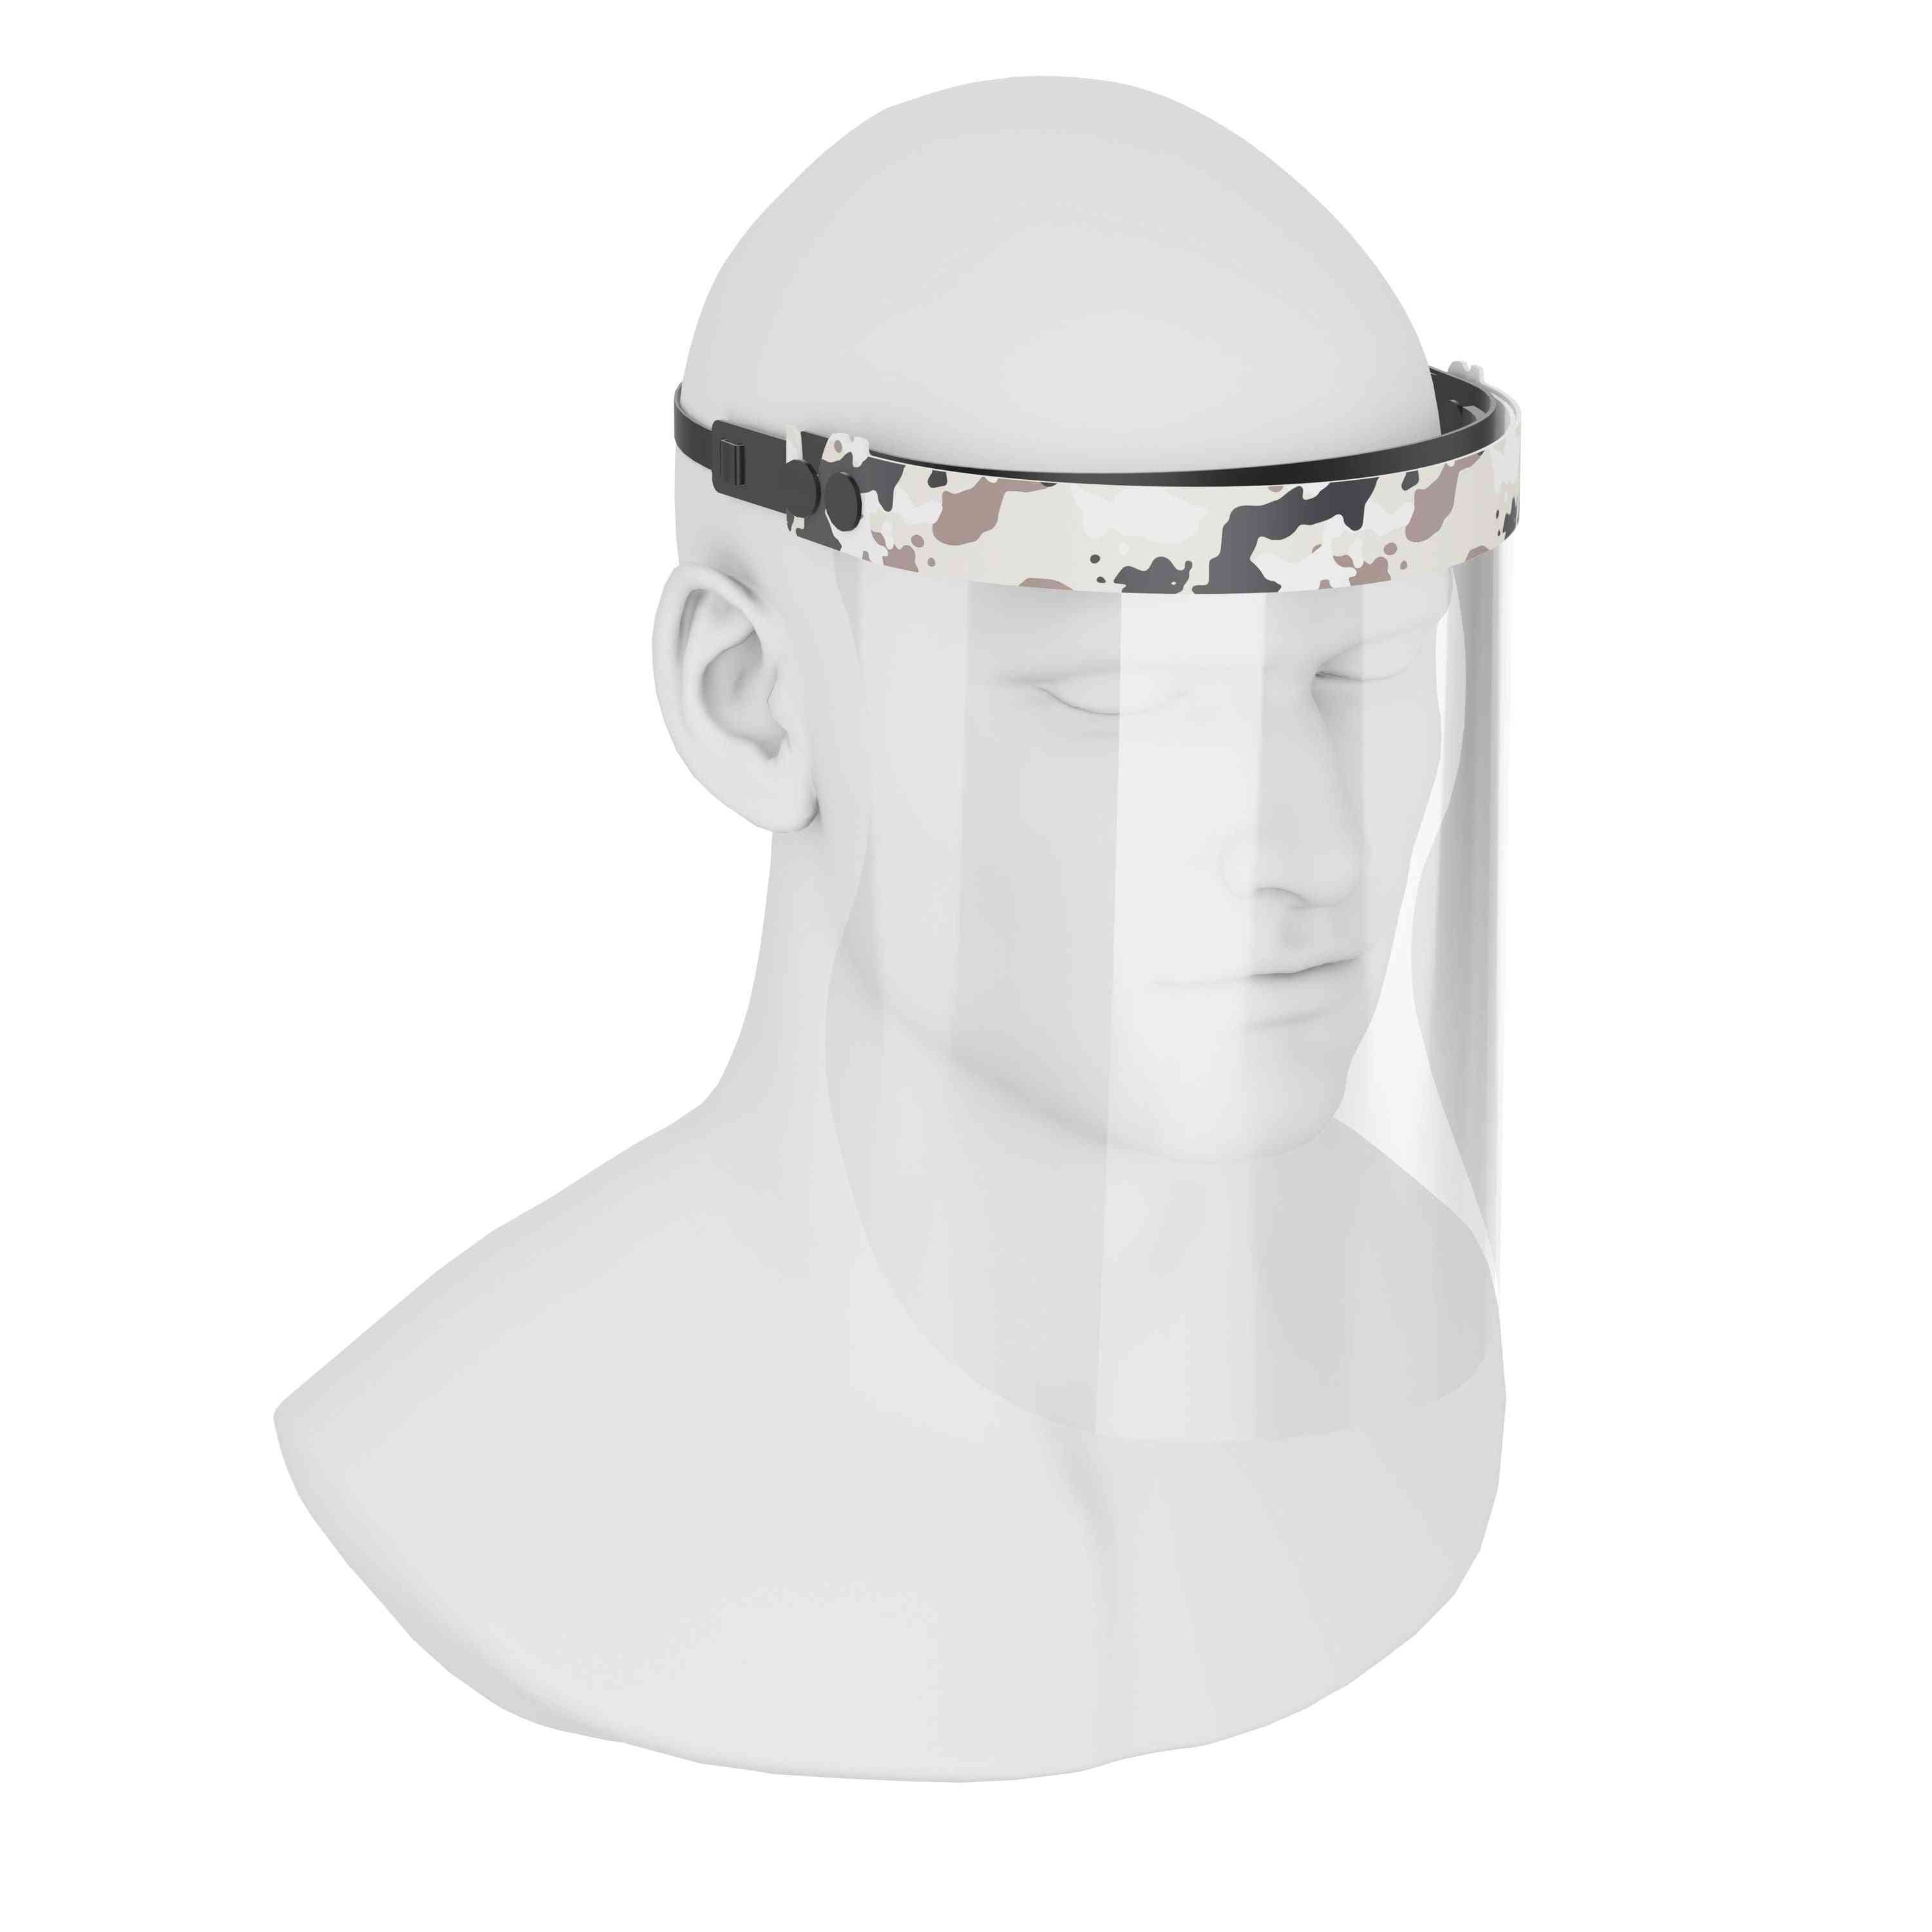 Isolay Face Shield Desert Camouflage